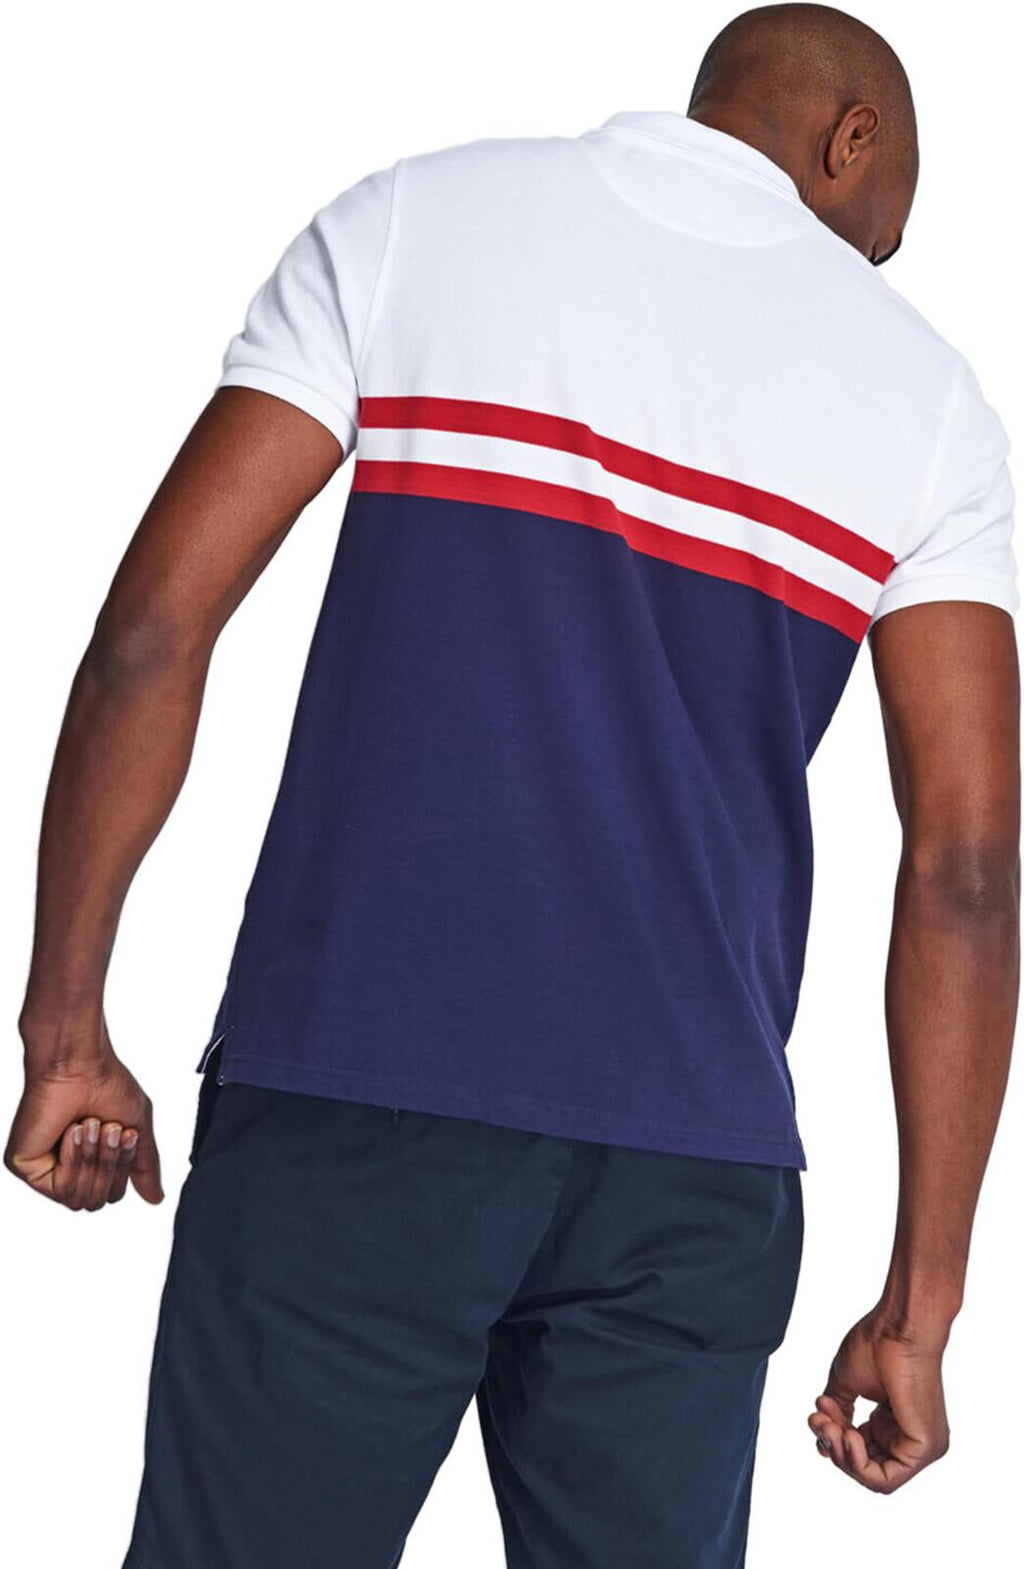 Lyle & Scott Yoke Stripe Polo Shirt White